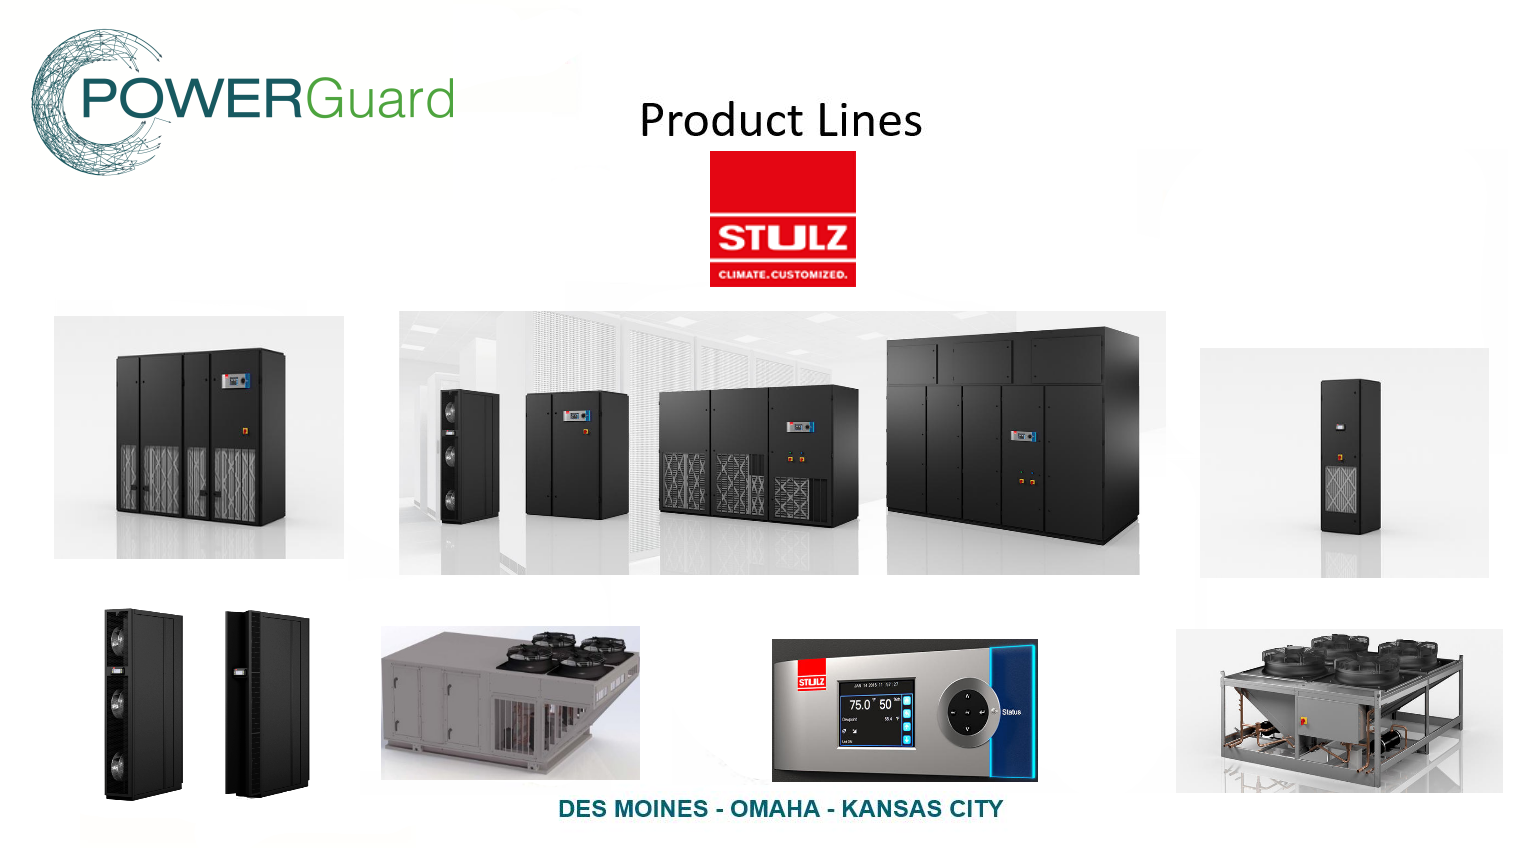 Power Guard & STULZ Air Conditioning Systems